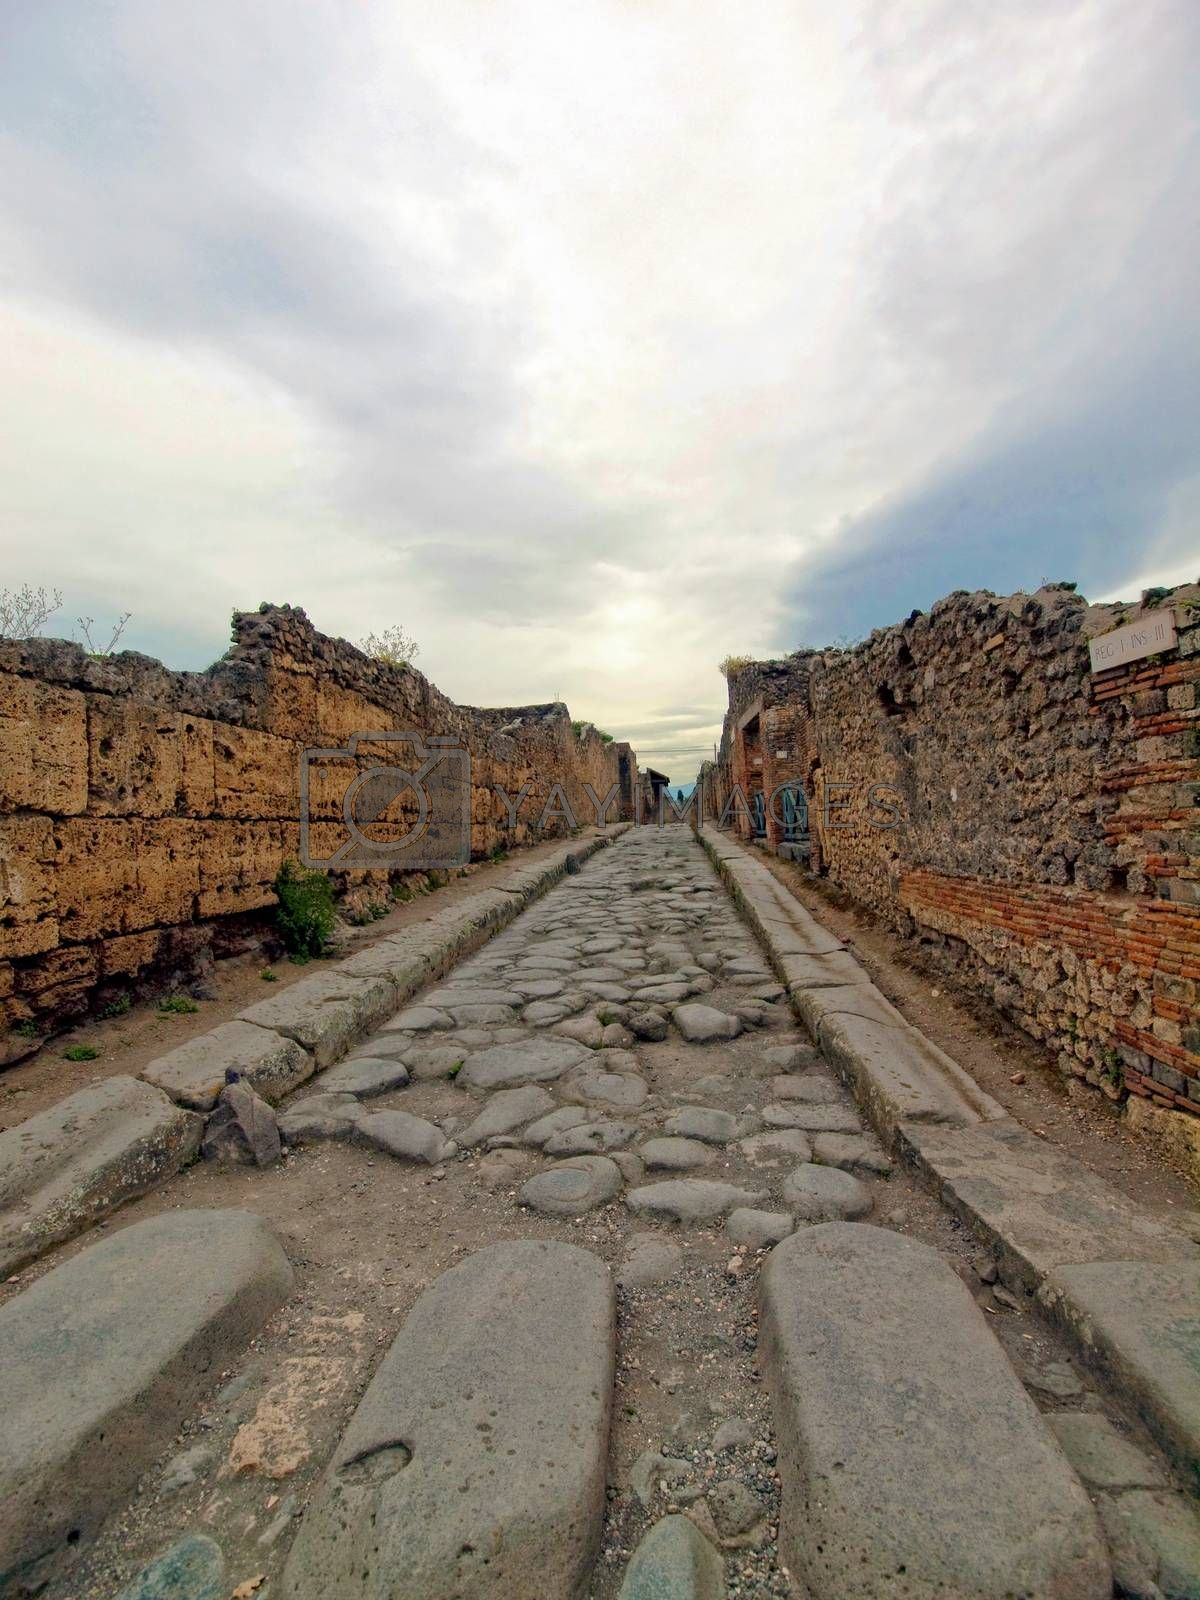 Royalty free image of Street in Pompeii with a stone walkway for pedestrians by johan10